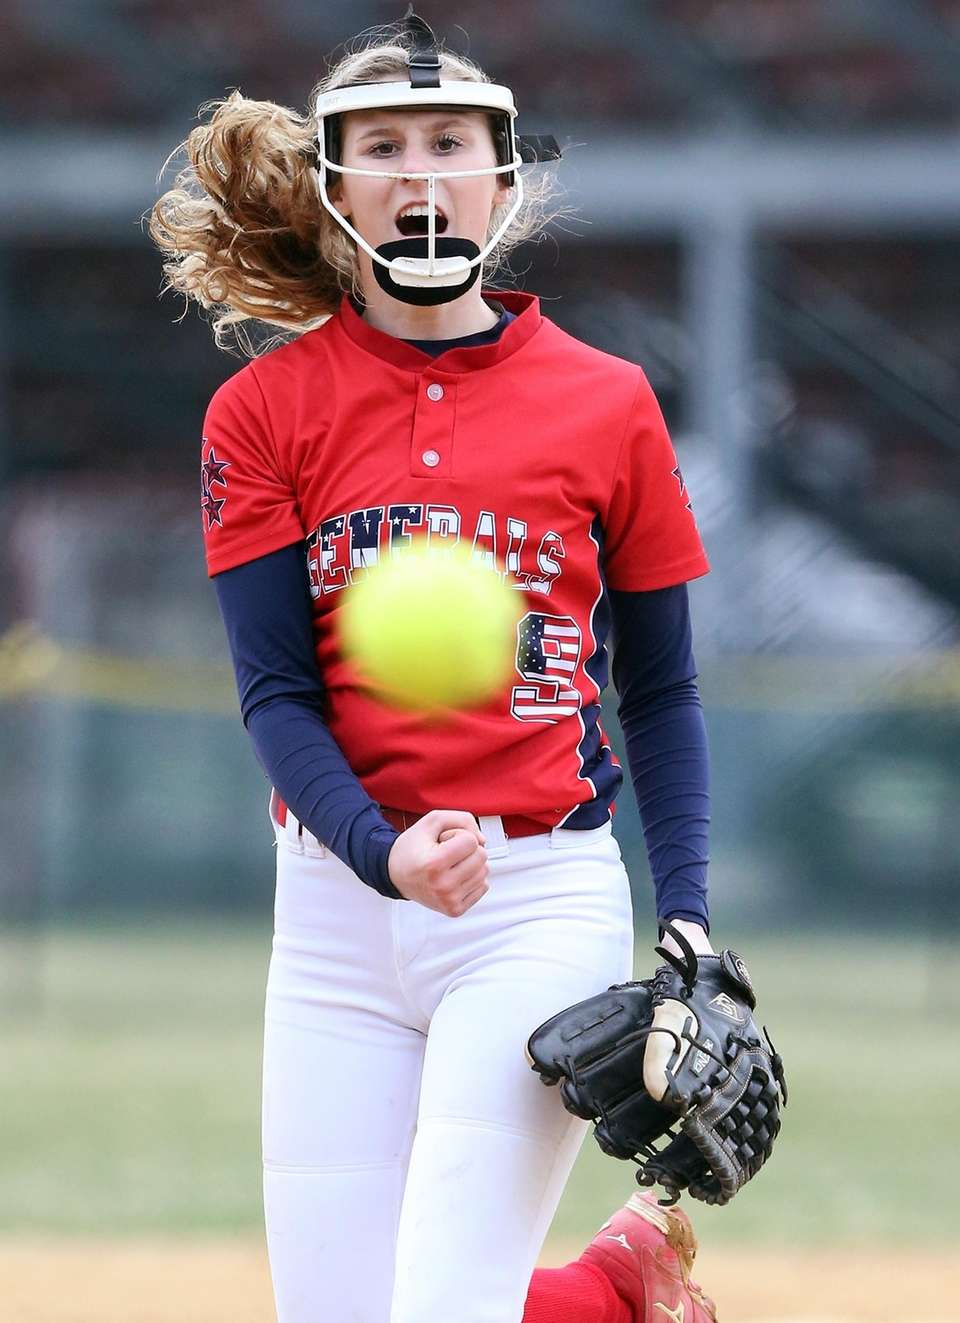 MacArthur's winning pitcher Jessica Budrewicz brings it to